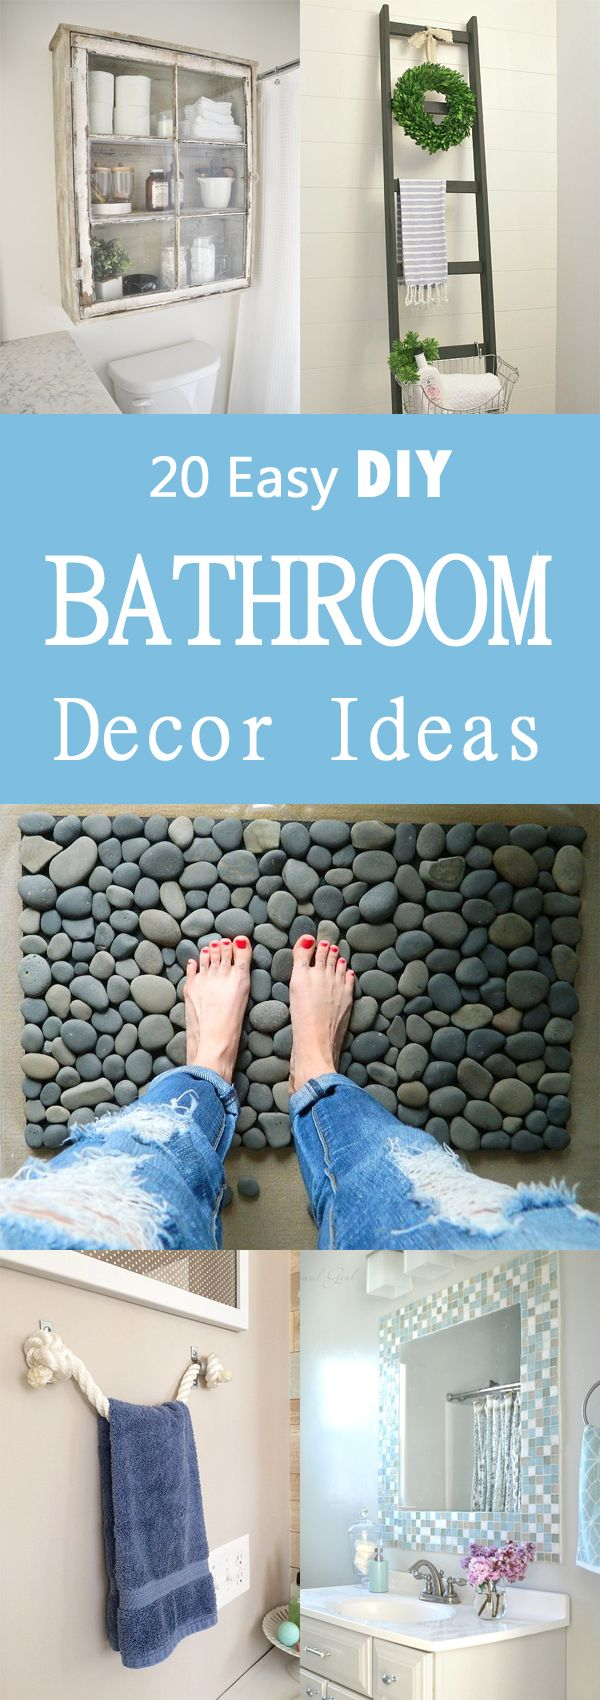 50 best diy home decor ideas images on pinterest pinterest diy